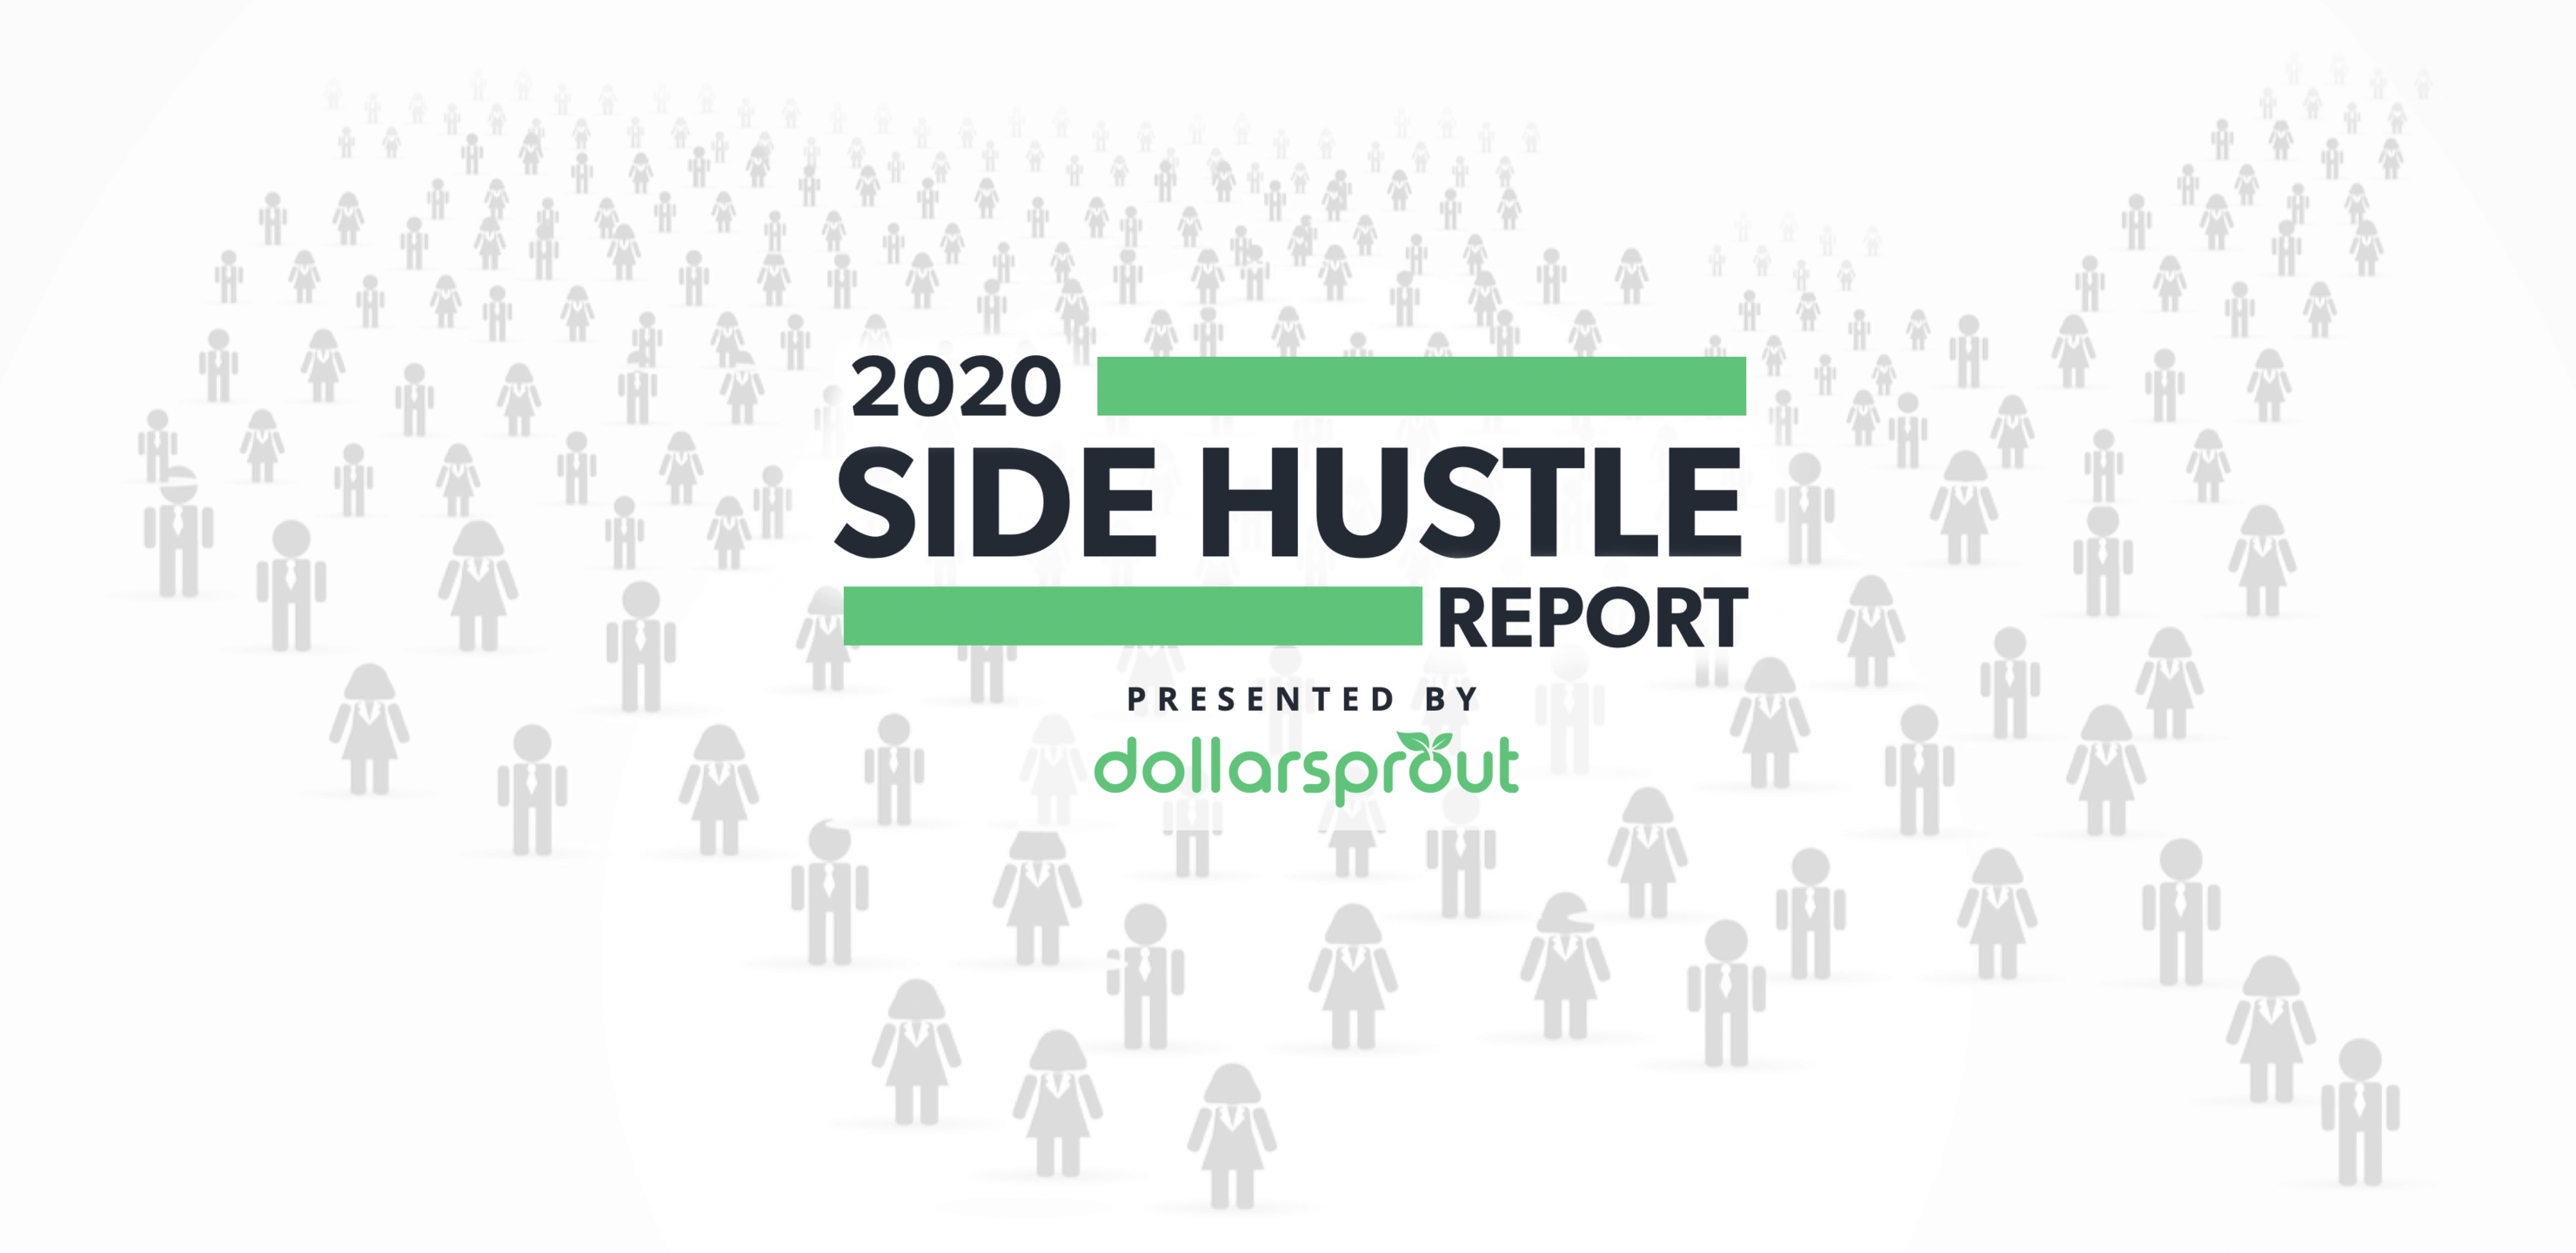 side hustle report page